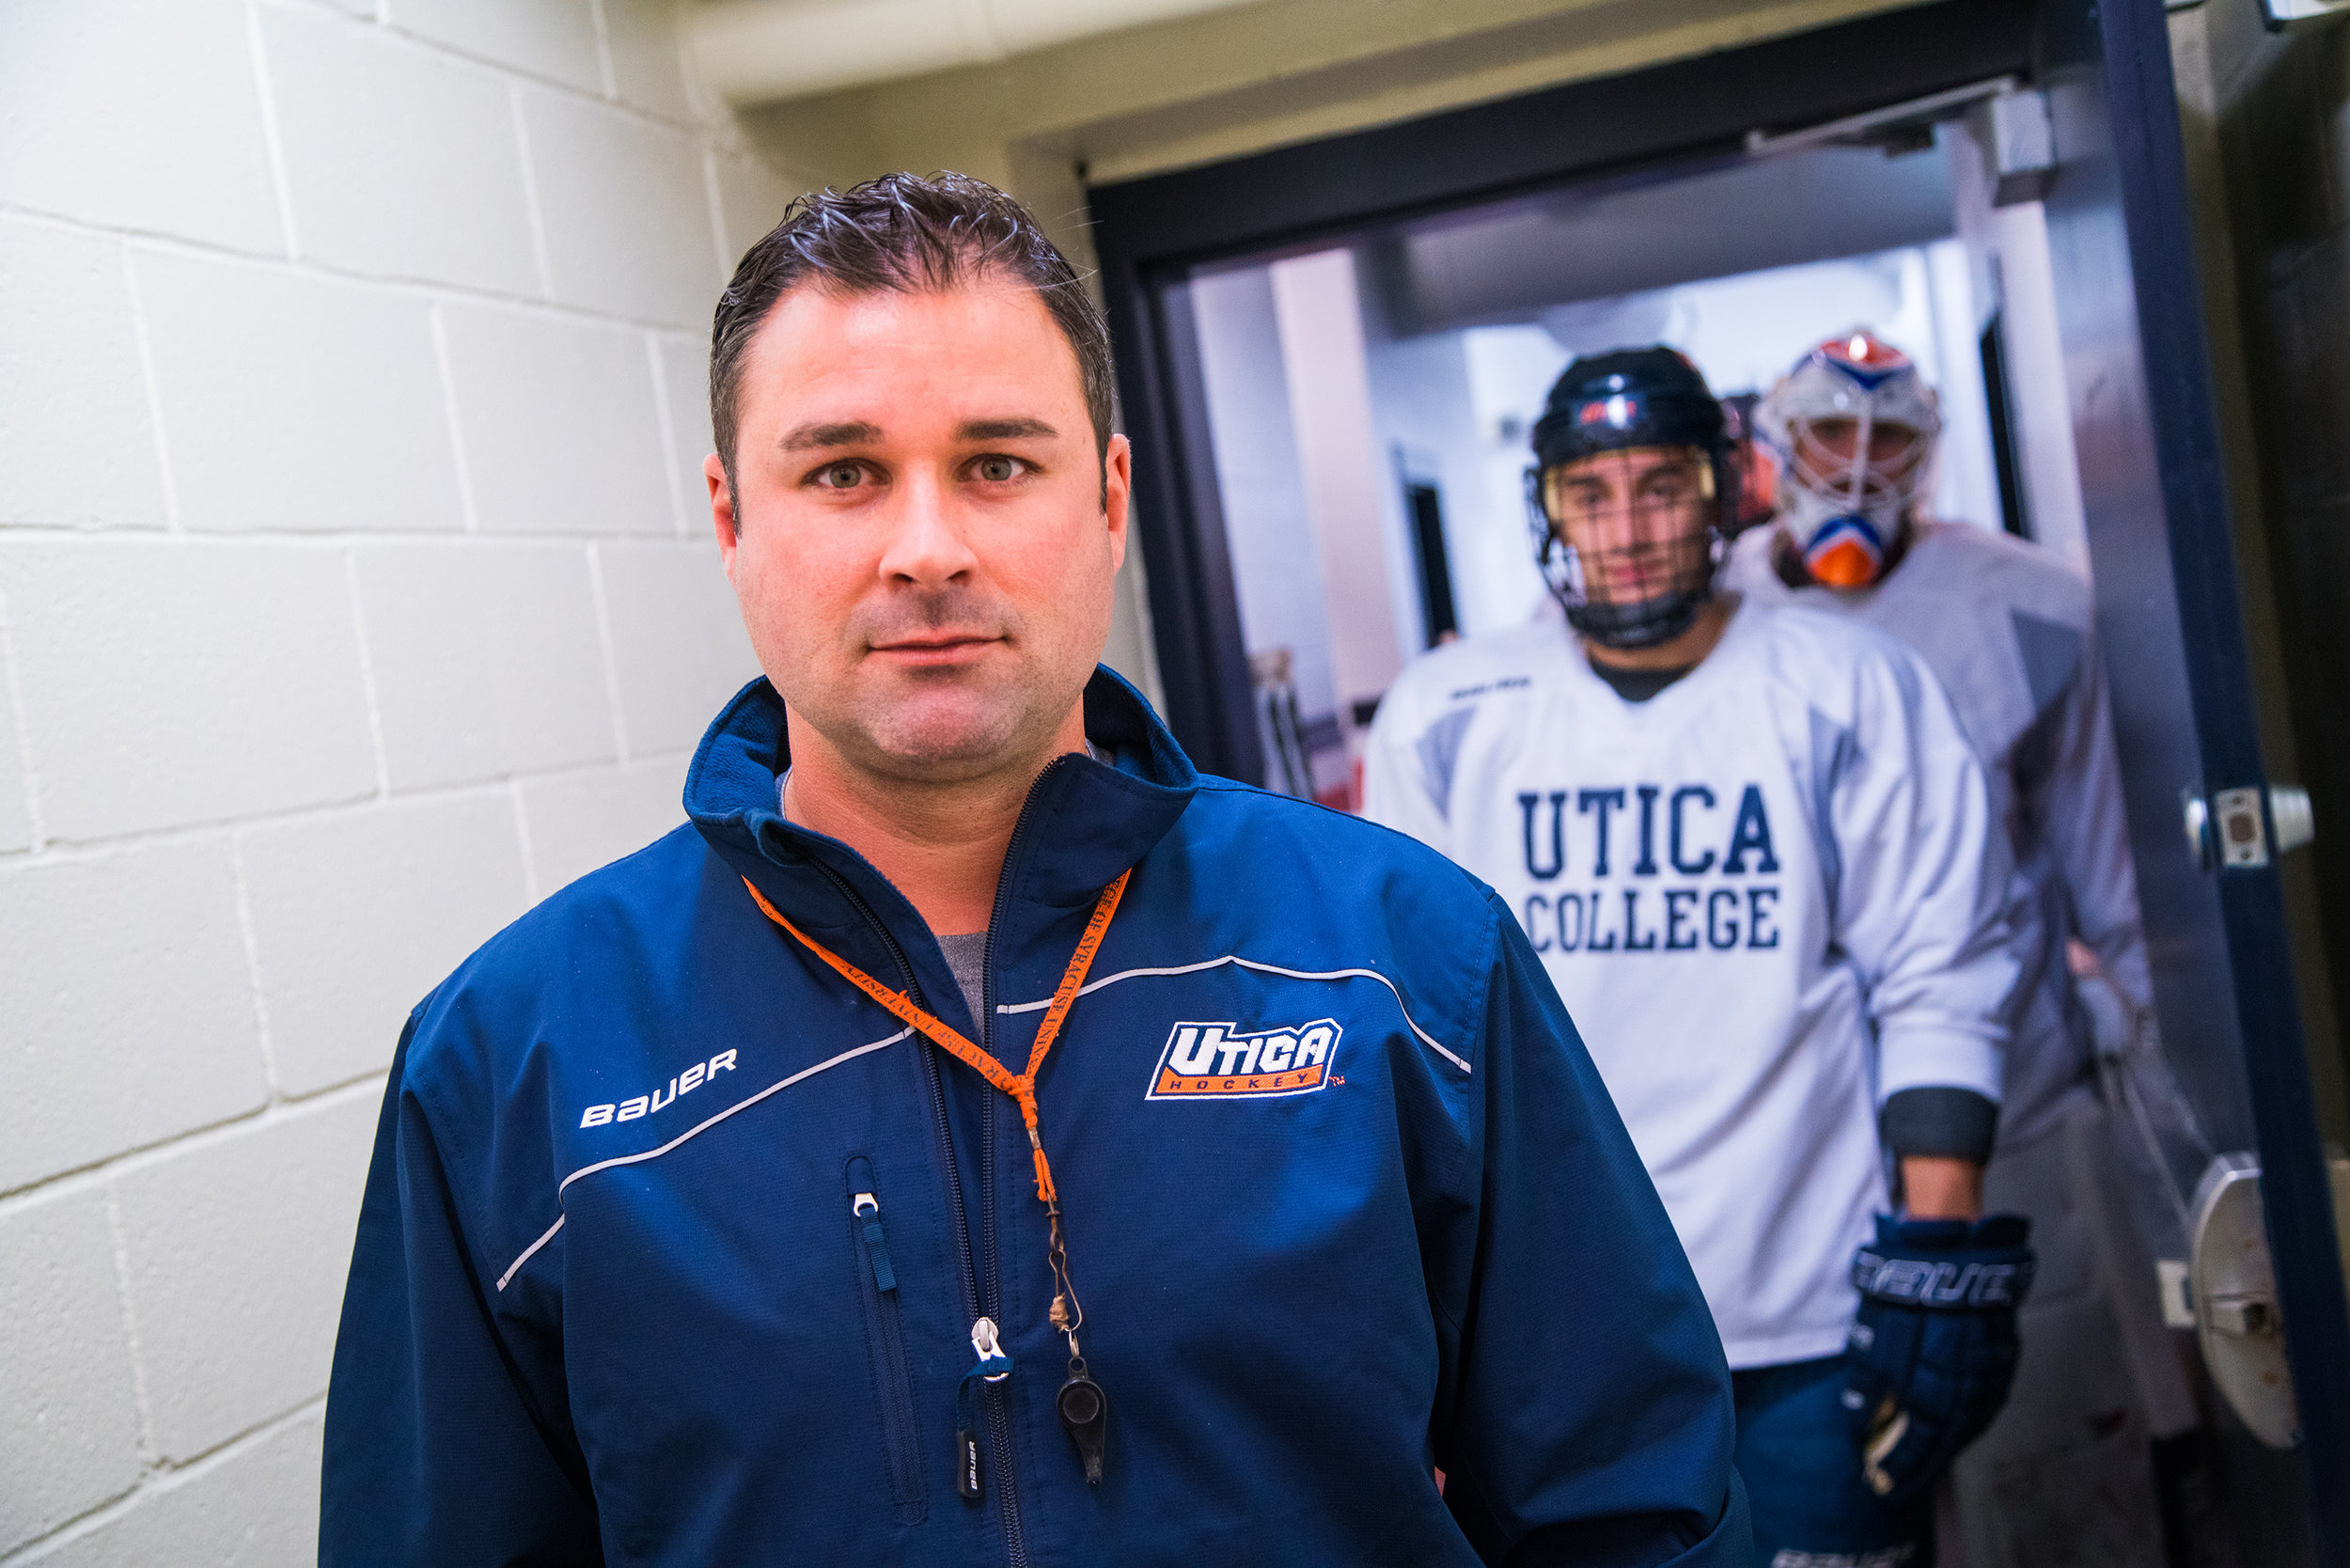 Utica College Head Coach Gary Heenan